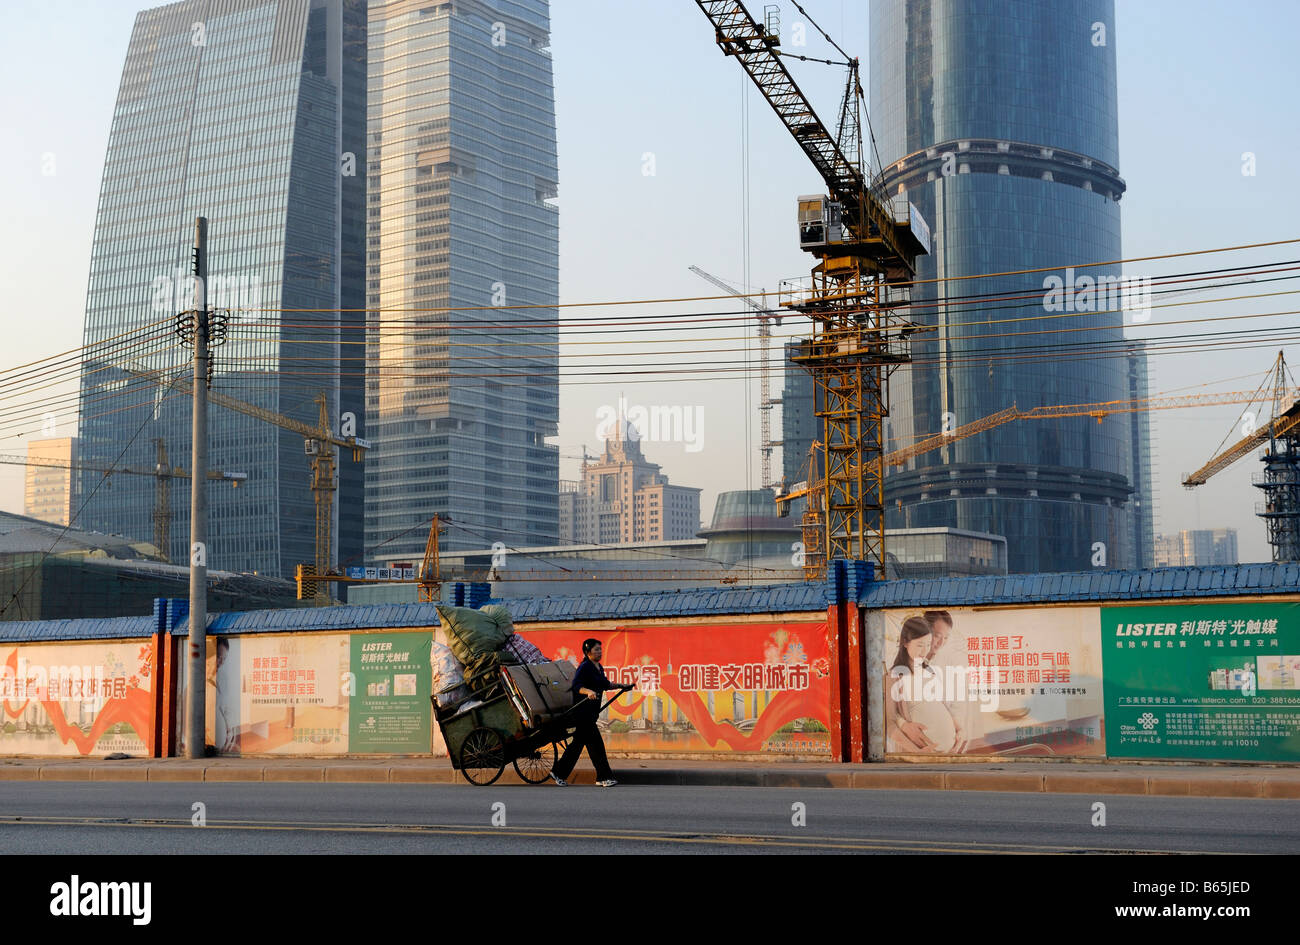 A woman transports bags and waste paper on a handcart on the pavement in front of a construction site in Guangzhou. - Stock Image